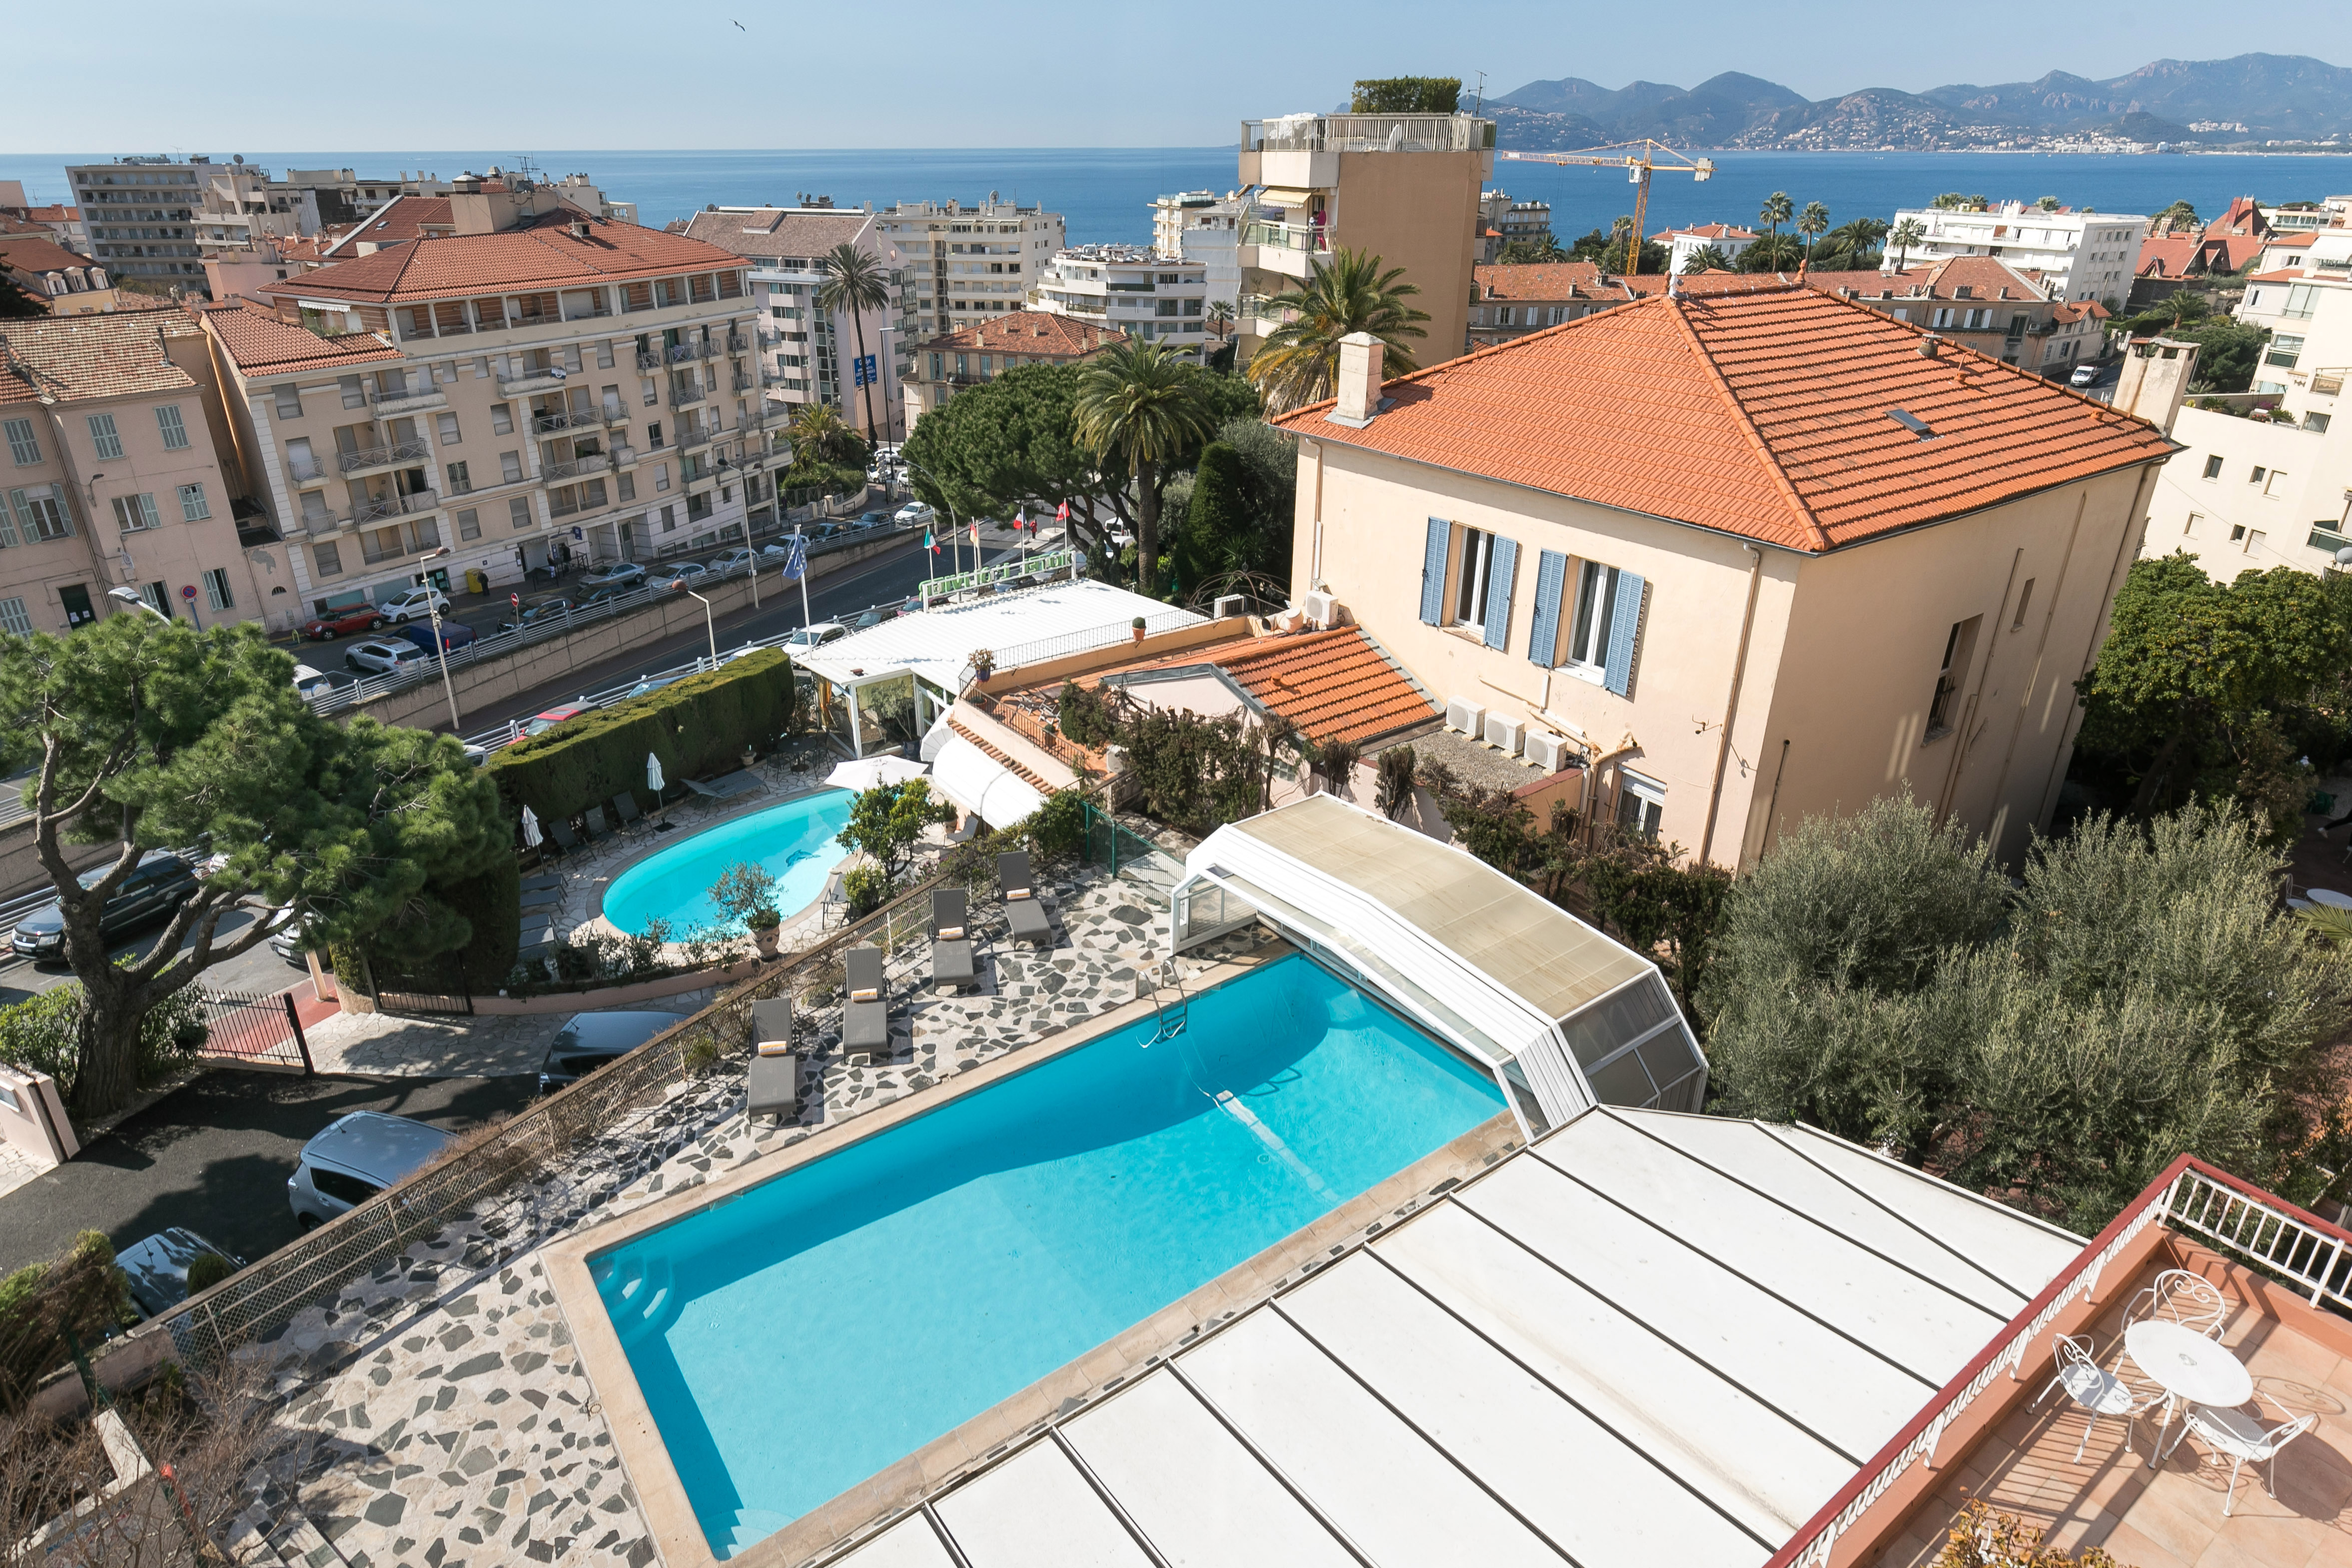 Pool of the Hotel des Orangers Cannes